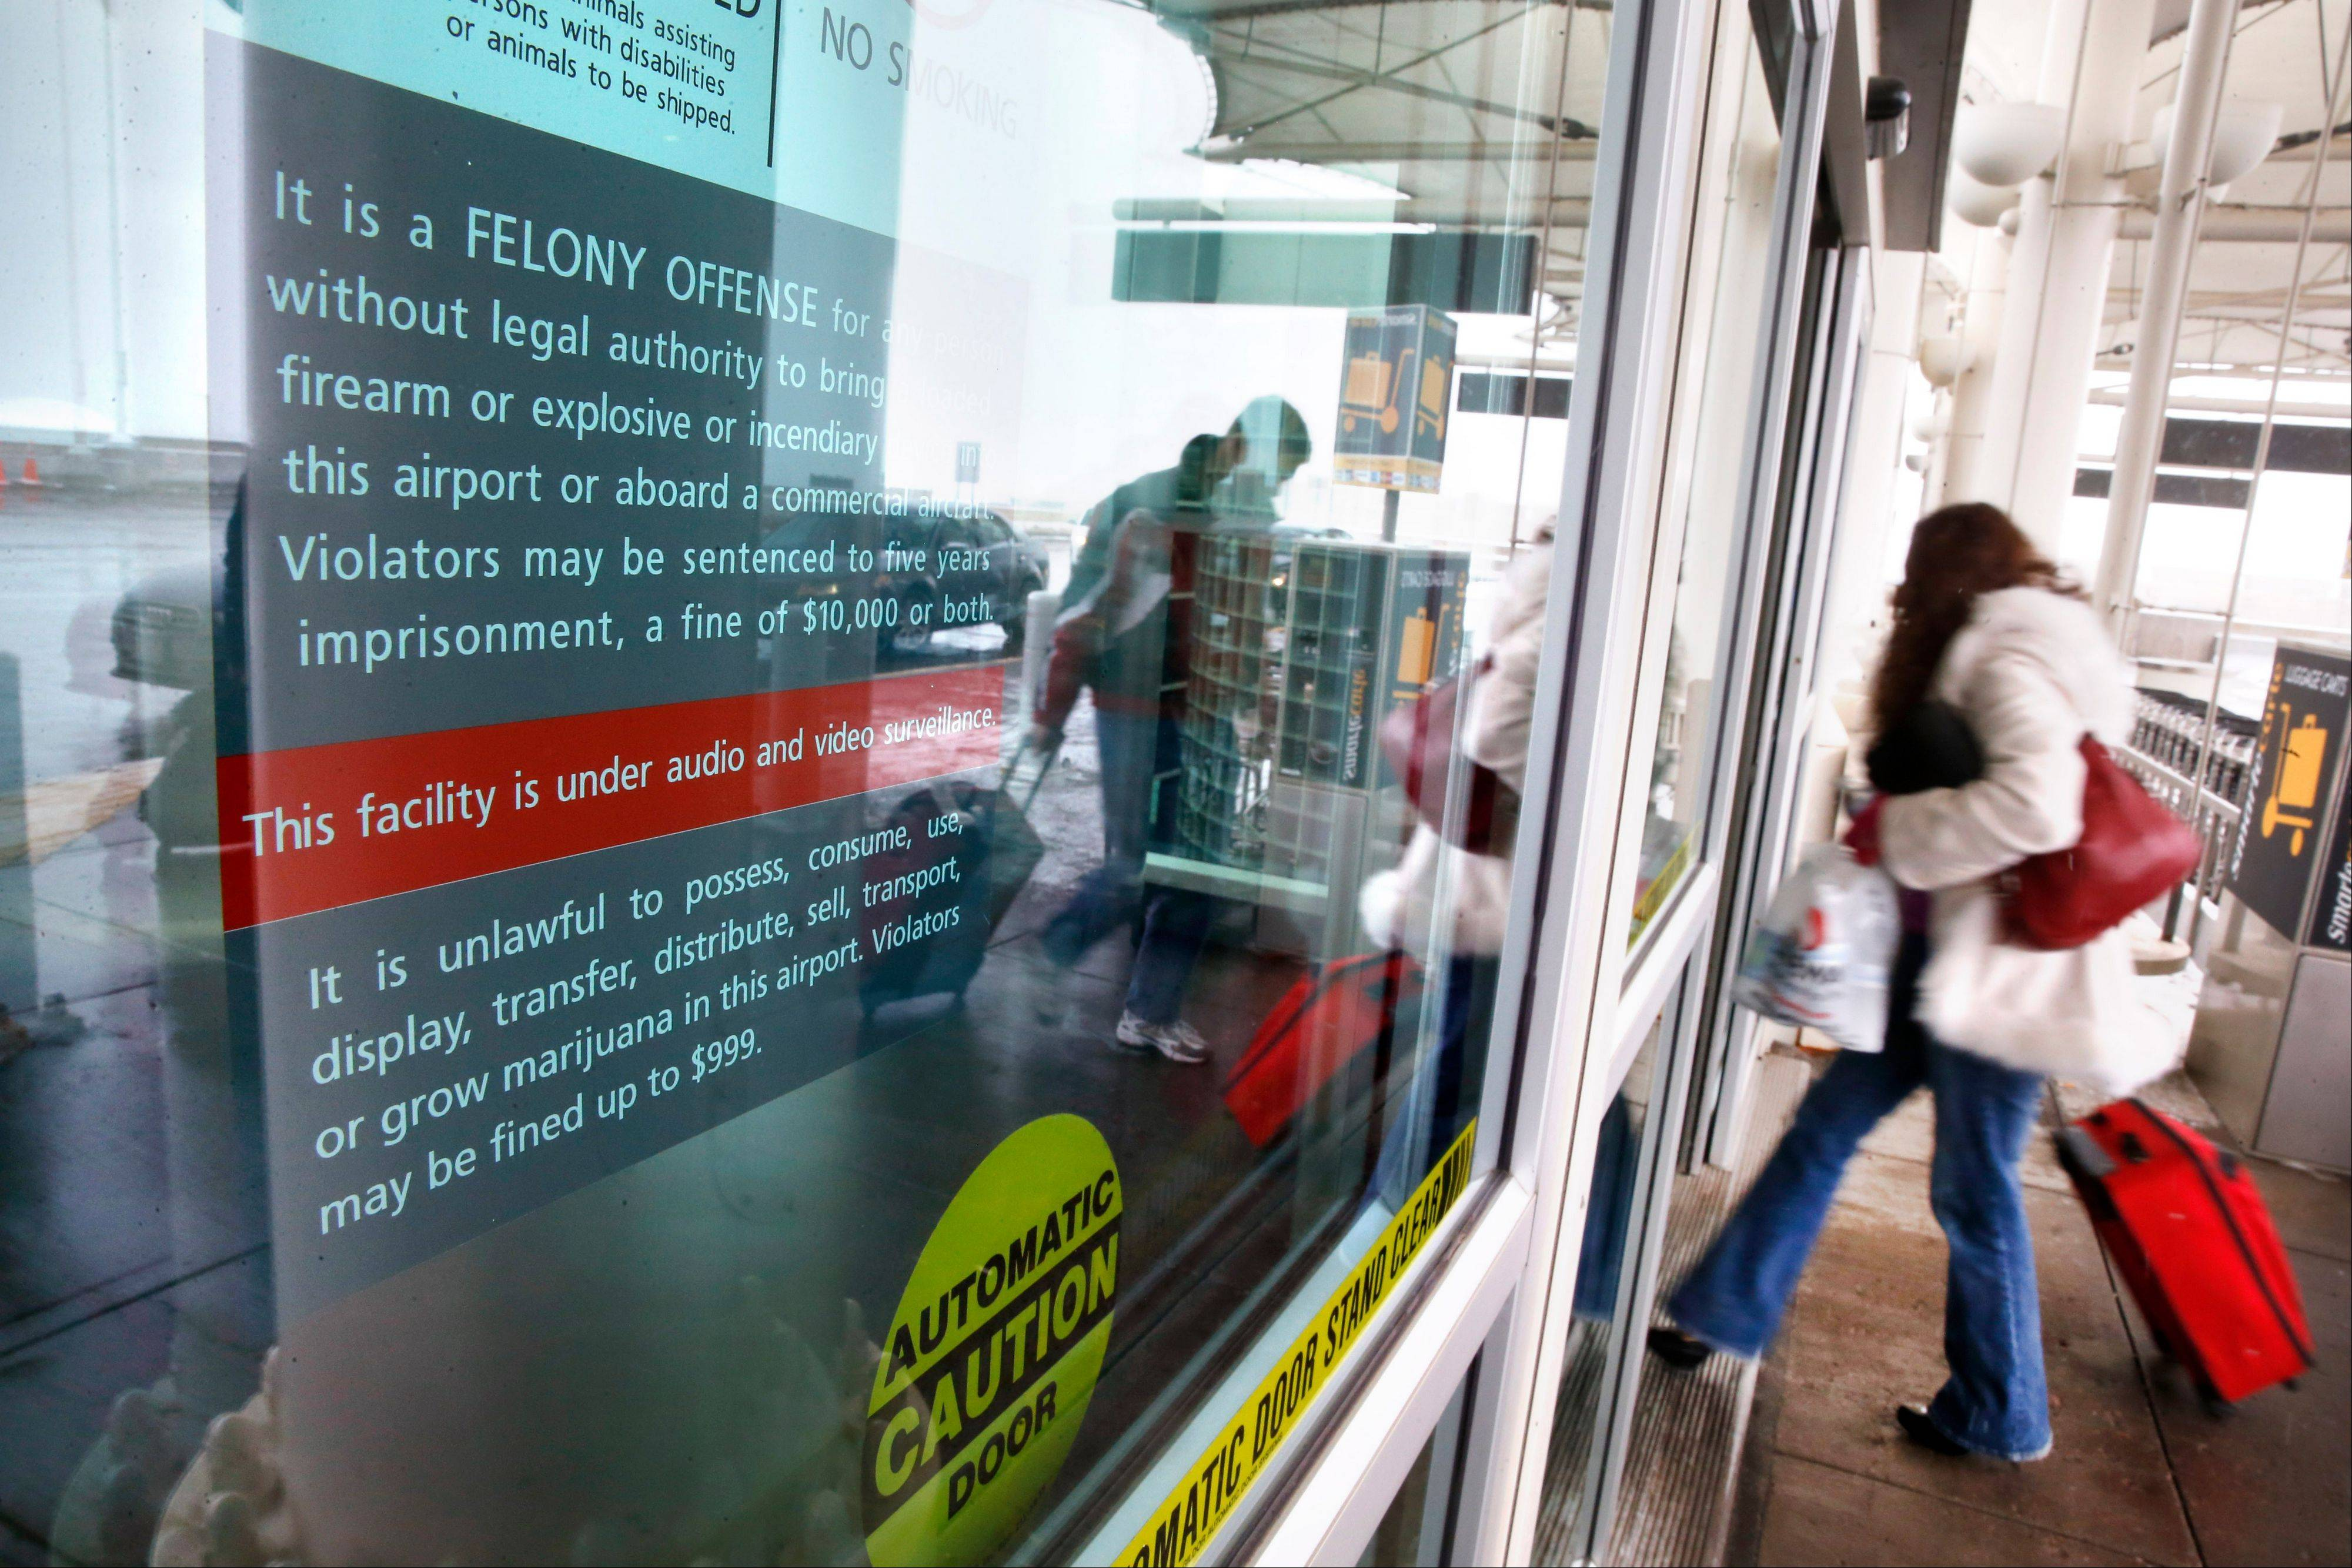 A woman enters Denver International Airport, passing a notice prohibiting marijuana possession at the airport, Monday, Jan. 27, 2014. Carrying marijuana through airport security in Colorado may get the pot confiscated, but there appears to be little danger of legal repercussions.